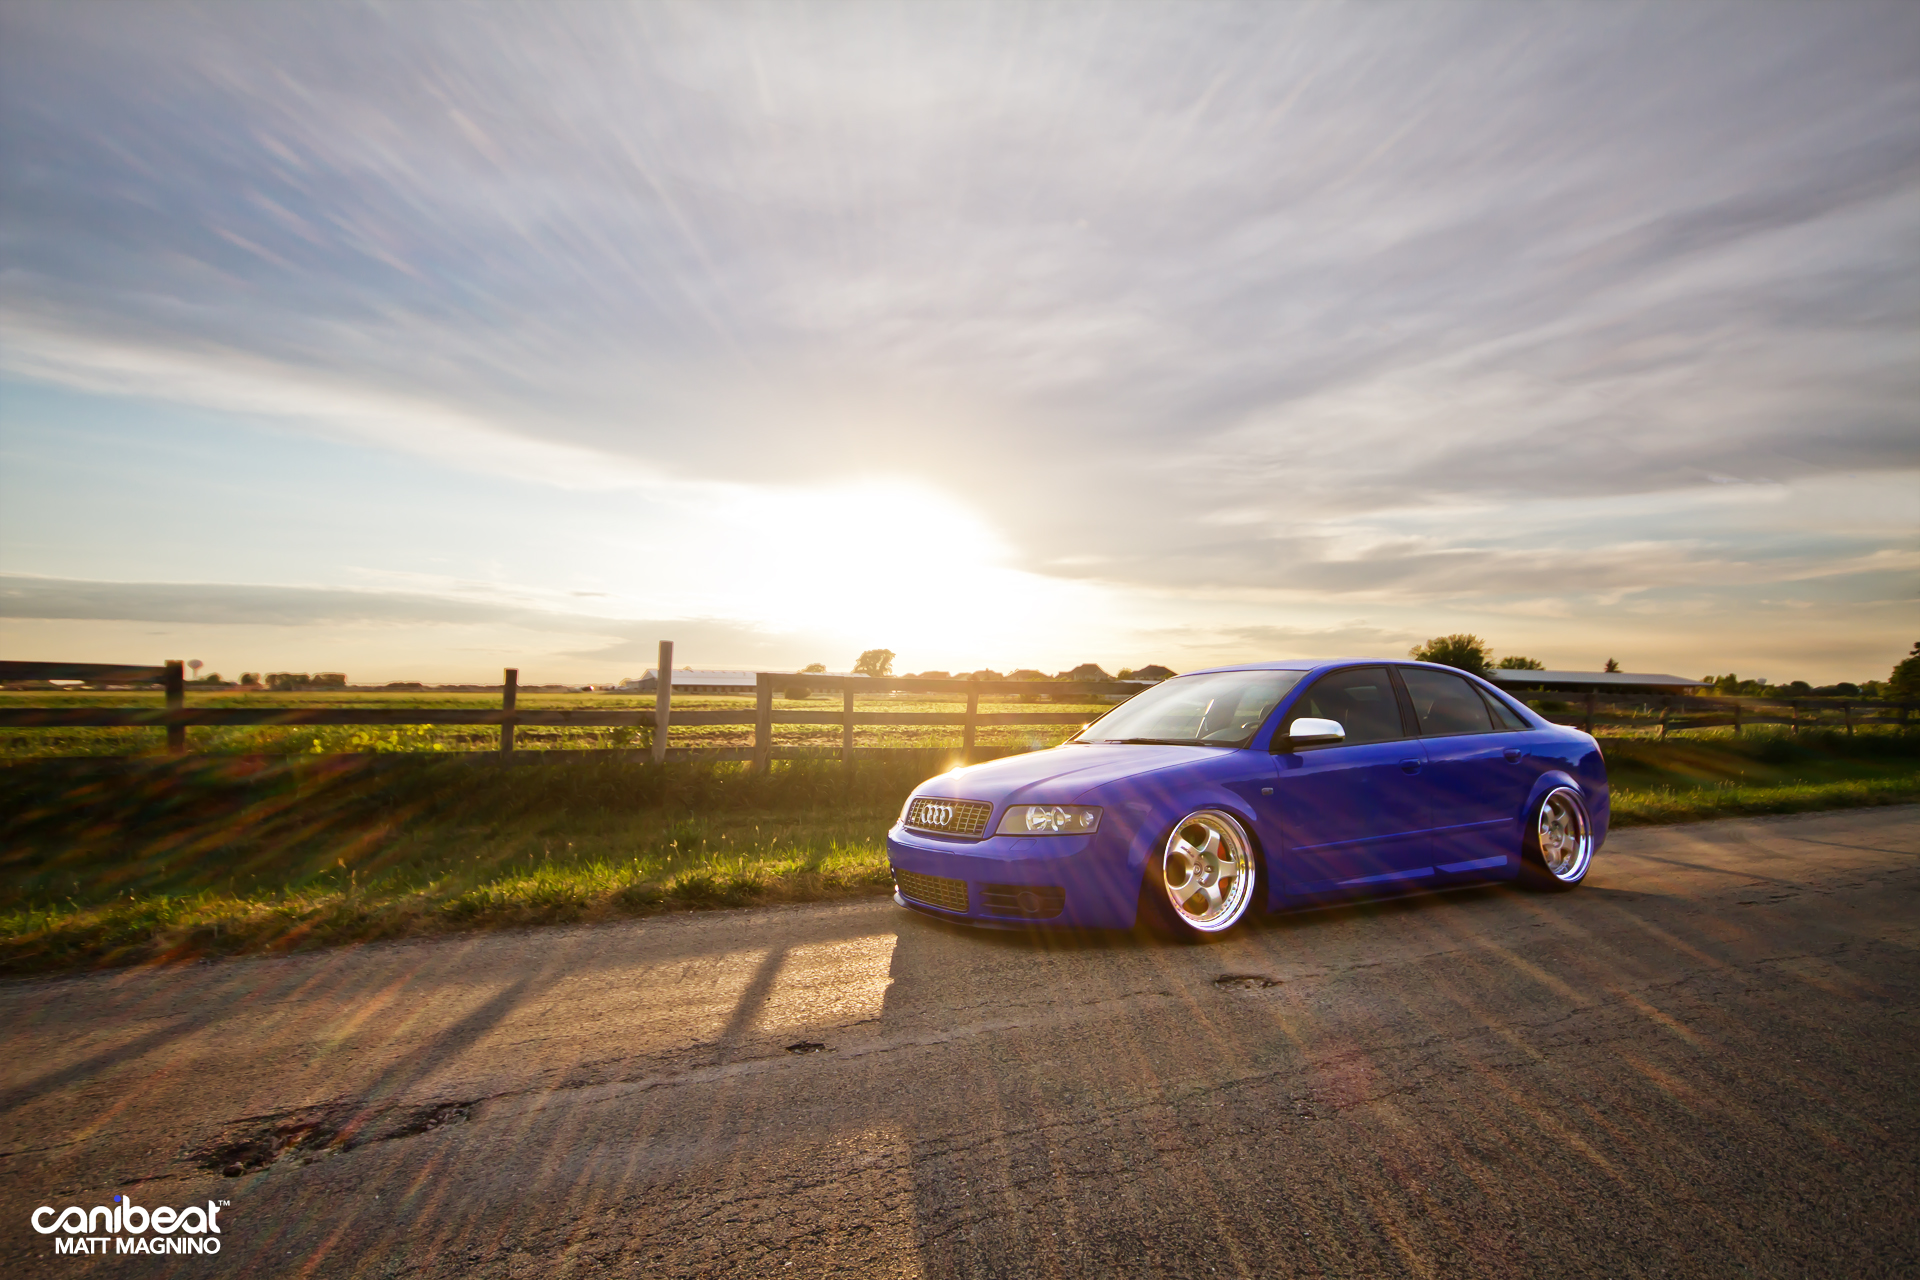 Audi S 4 Tuning Stance E Wallpaper 1920x1280 81212